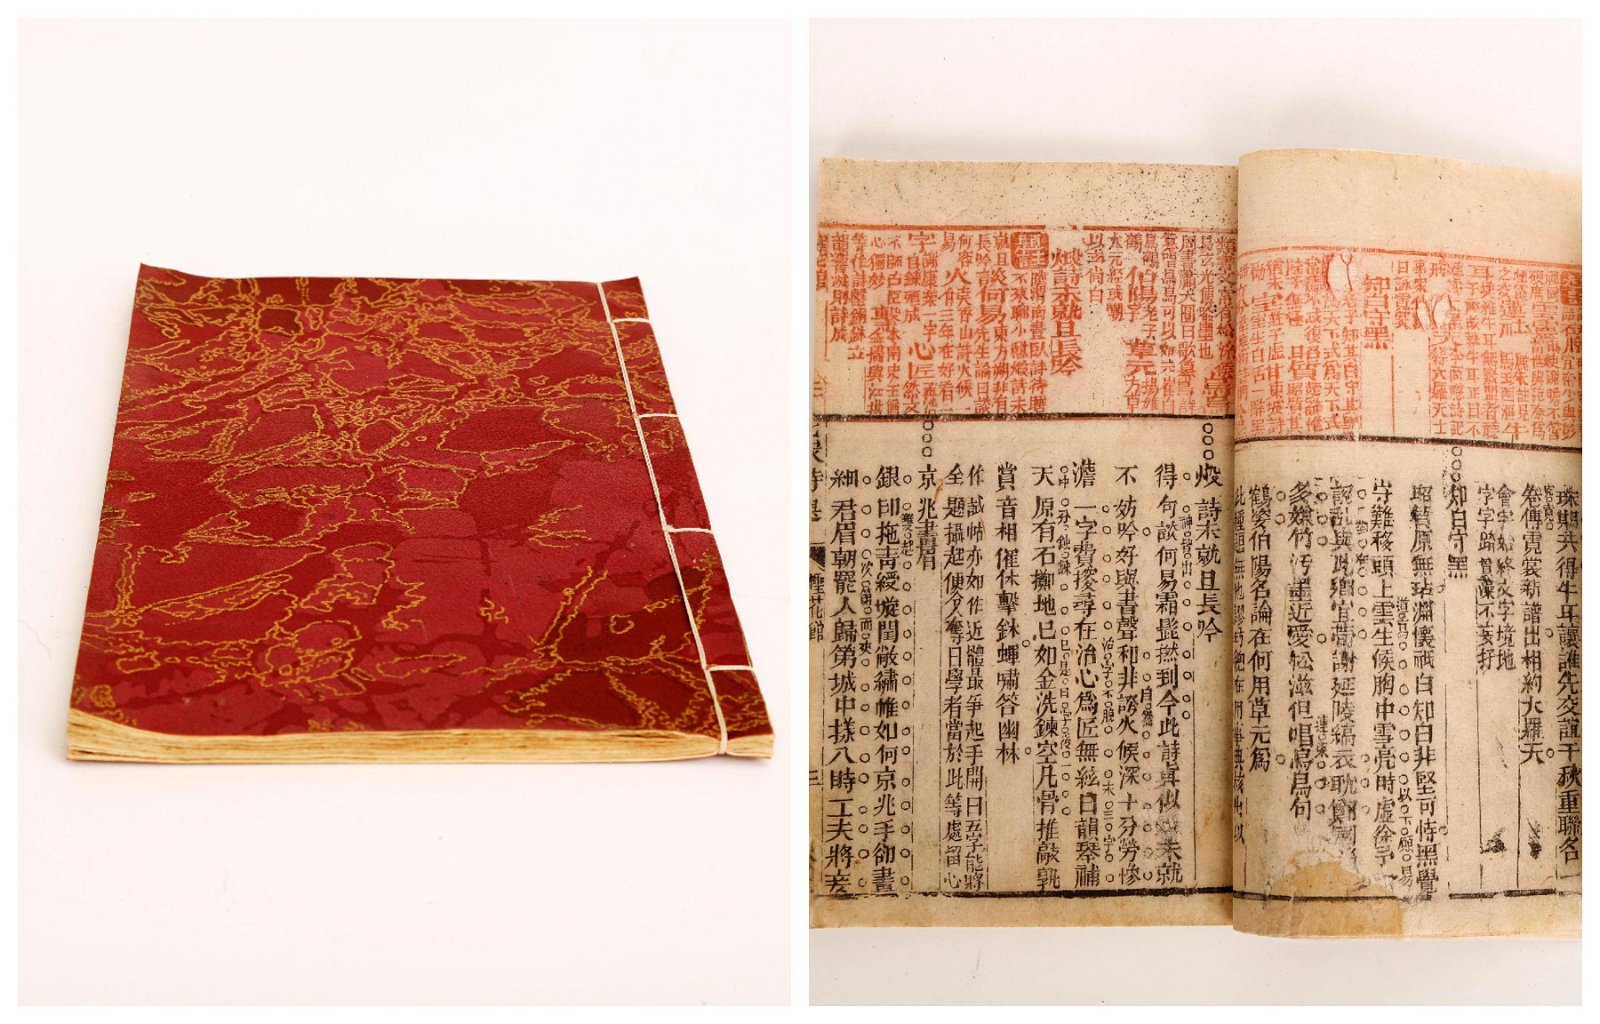 A QING DYNASTY PERIOD ENGRAVED WOOD BLOCK PRINTING BOOK